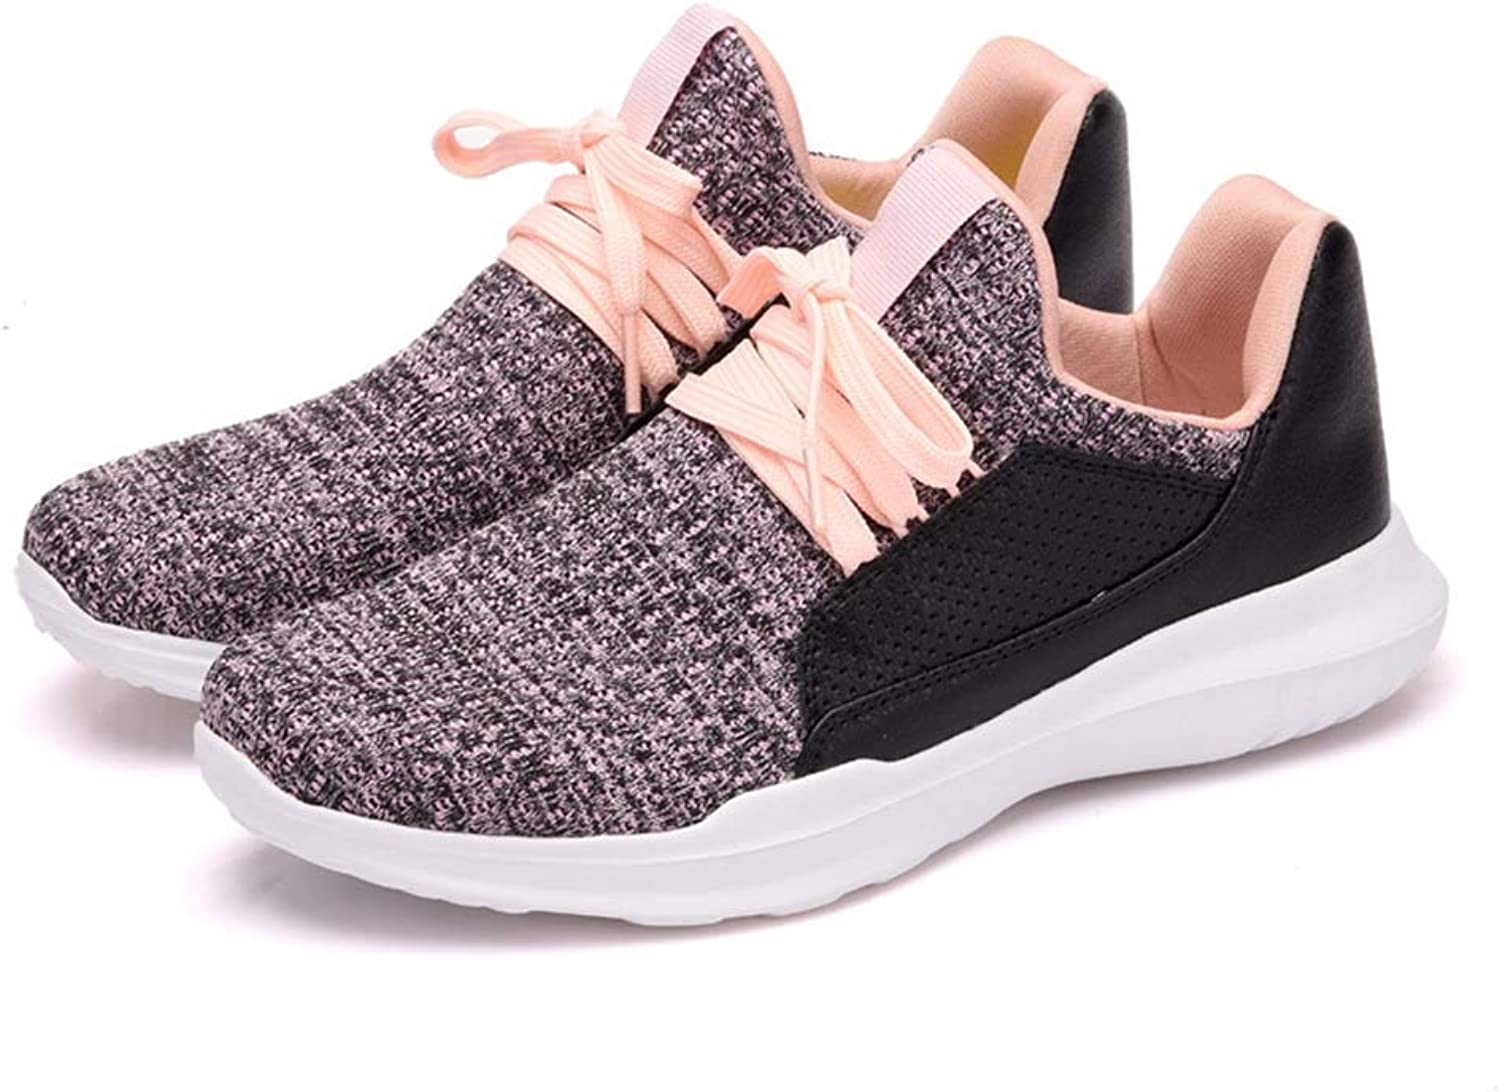 T-JULY Fashion Sneakers Sports shoes for Women Flat Slip-on Dress Footwear Leather Splicing Comfy Leisure Loafers